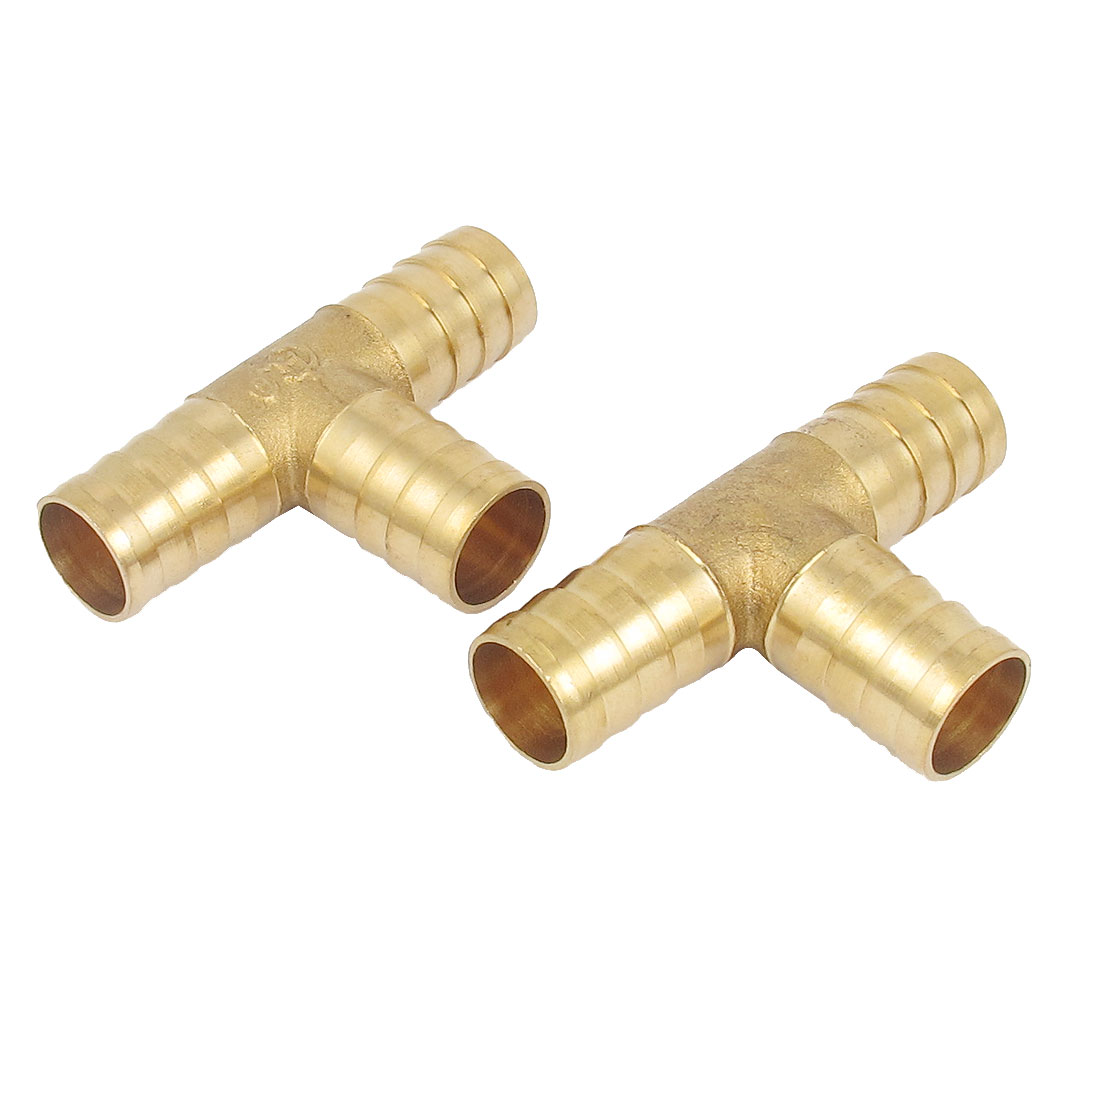 2 Pcs Brass T-Shape 3 Ways Hose Barb Fitting Adapter Coupler Connector 16mm Dia